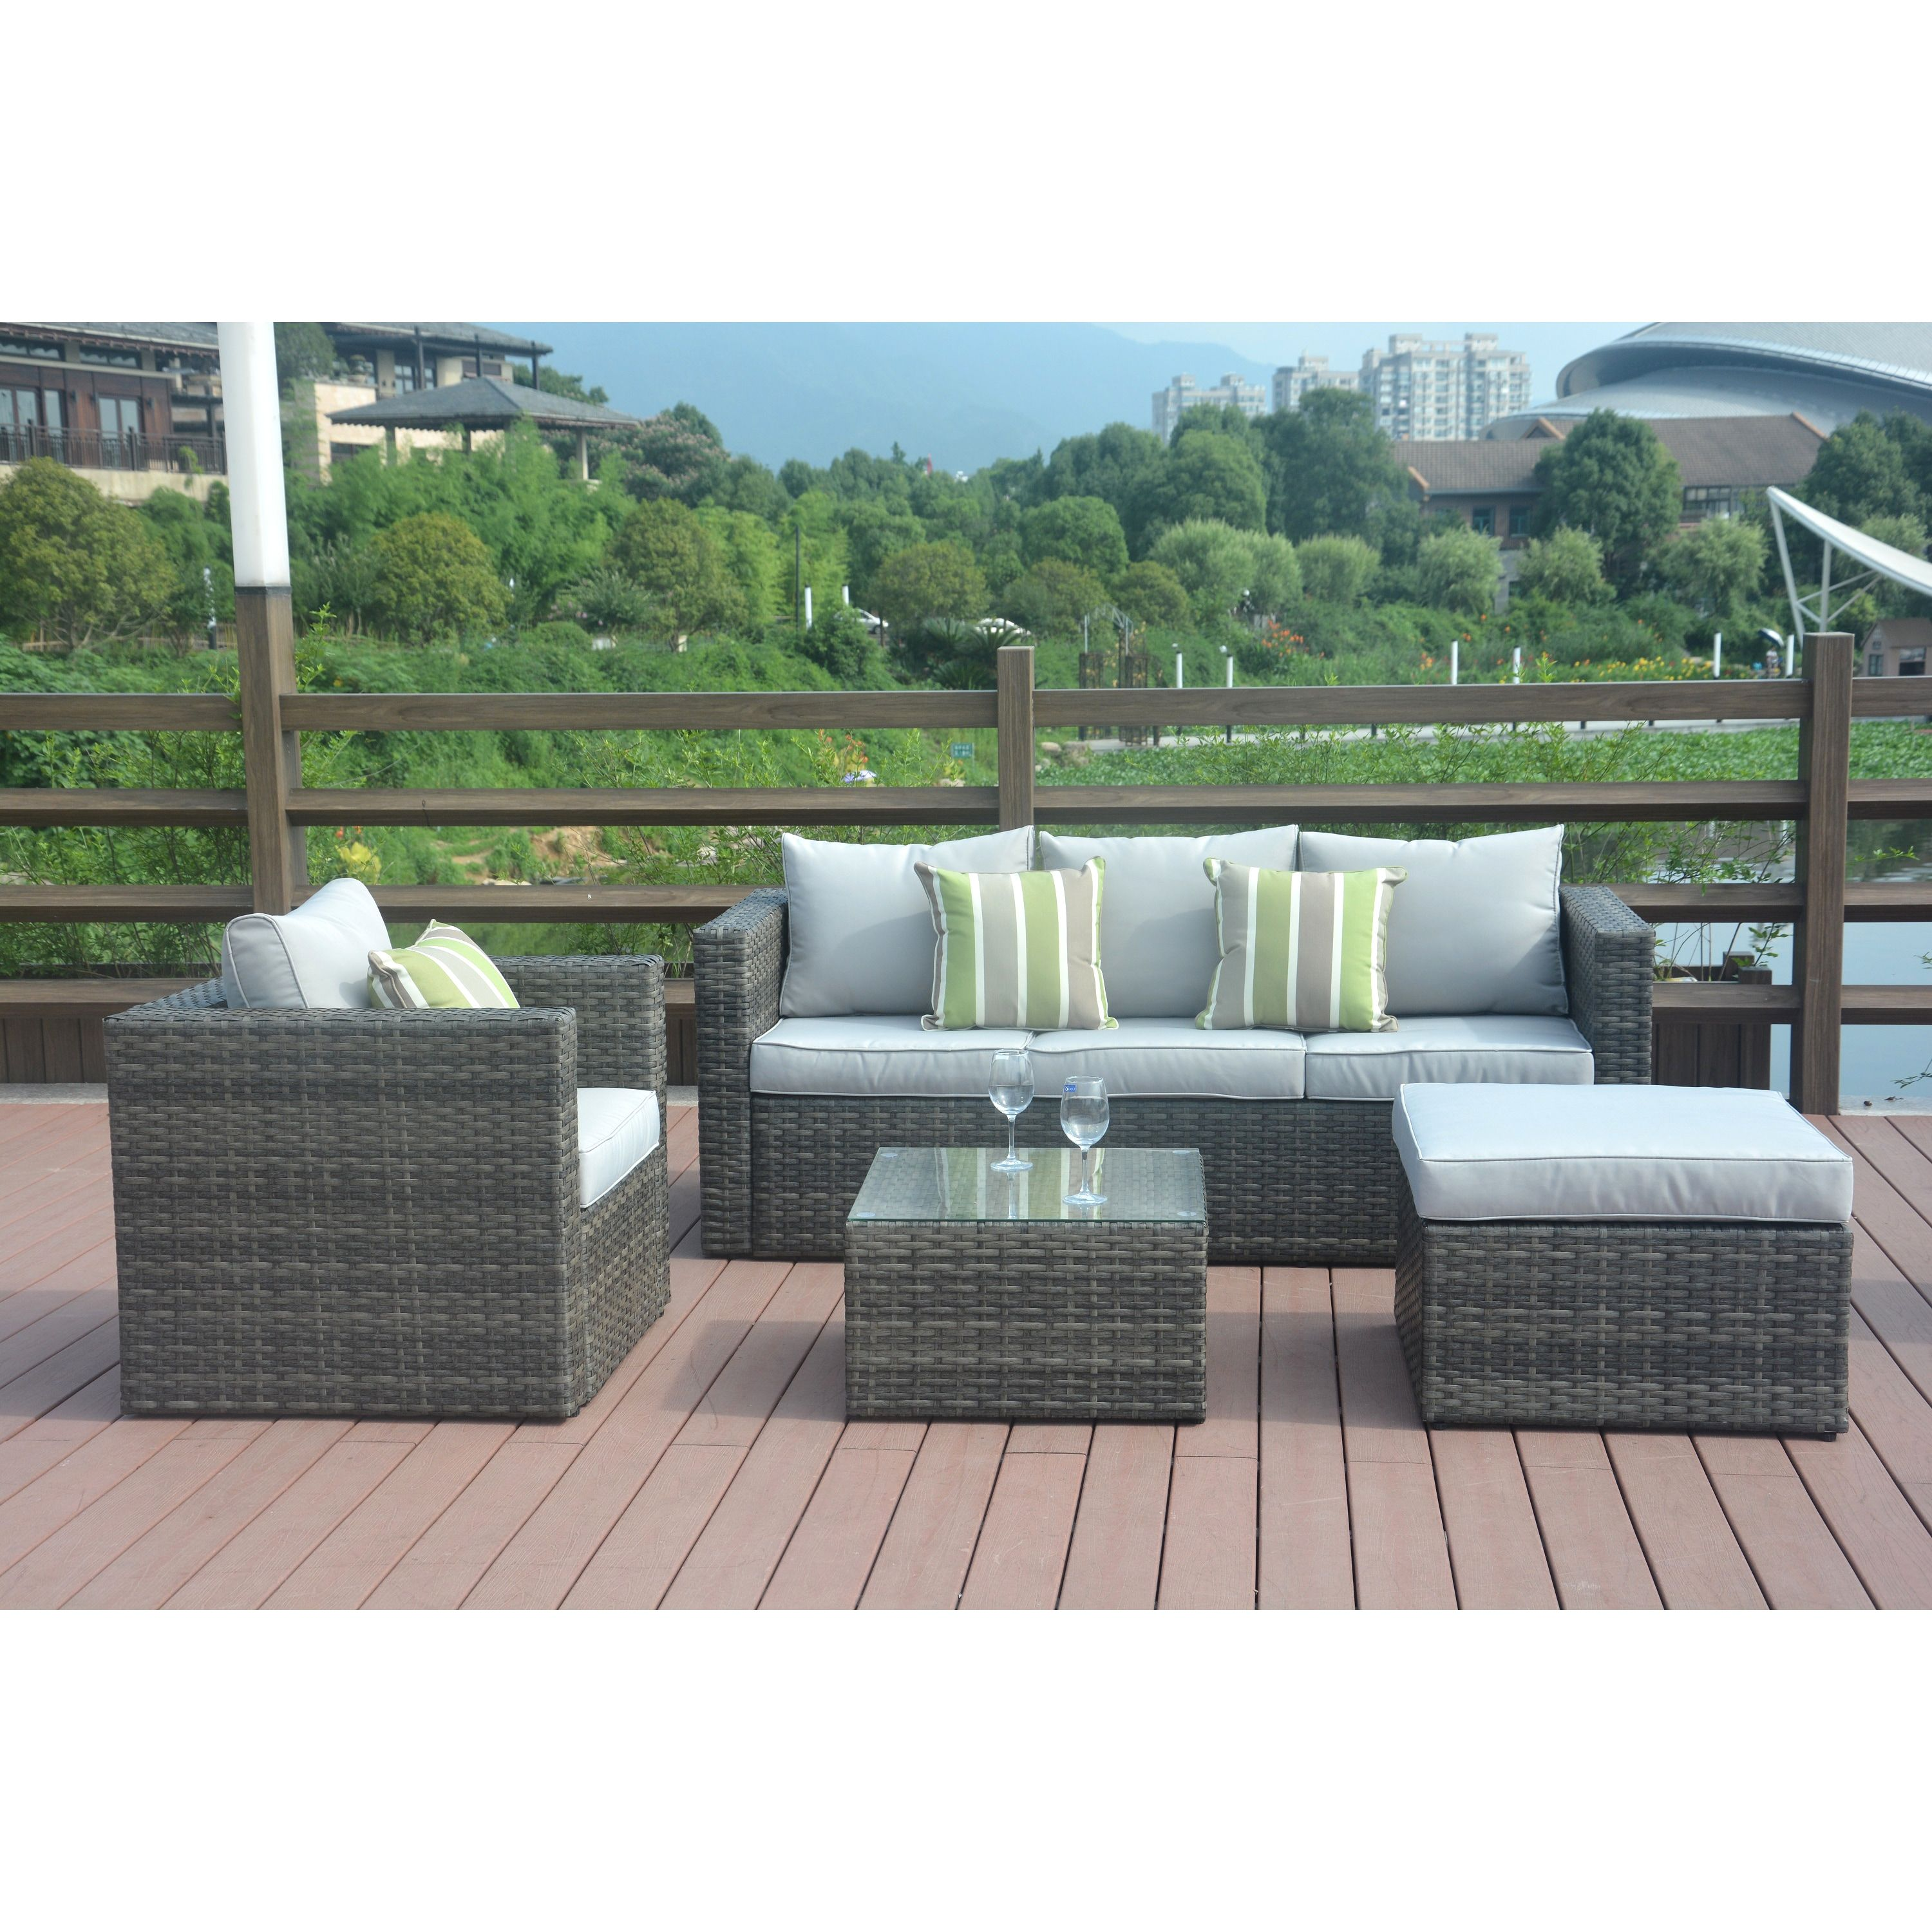 LTD Trudy Outdoor PE Wicker L shaped Sectional 4 piece Sofa Set